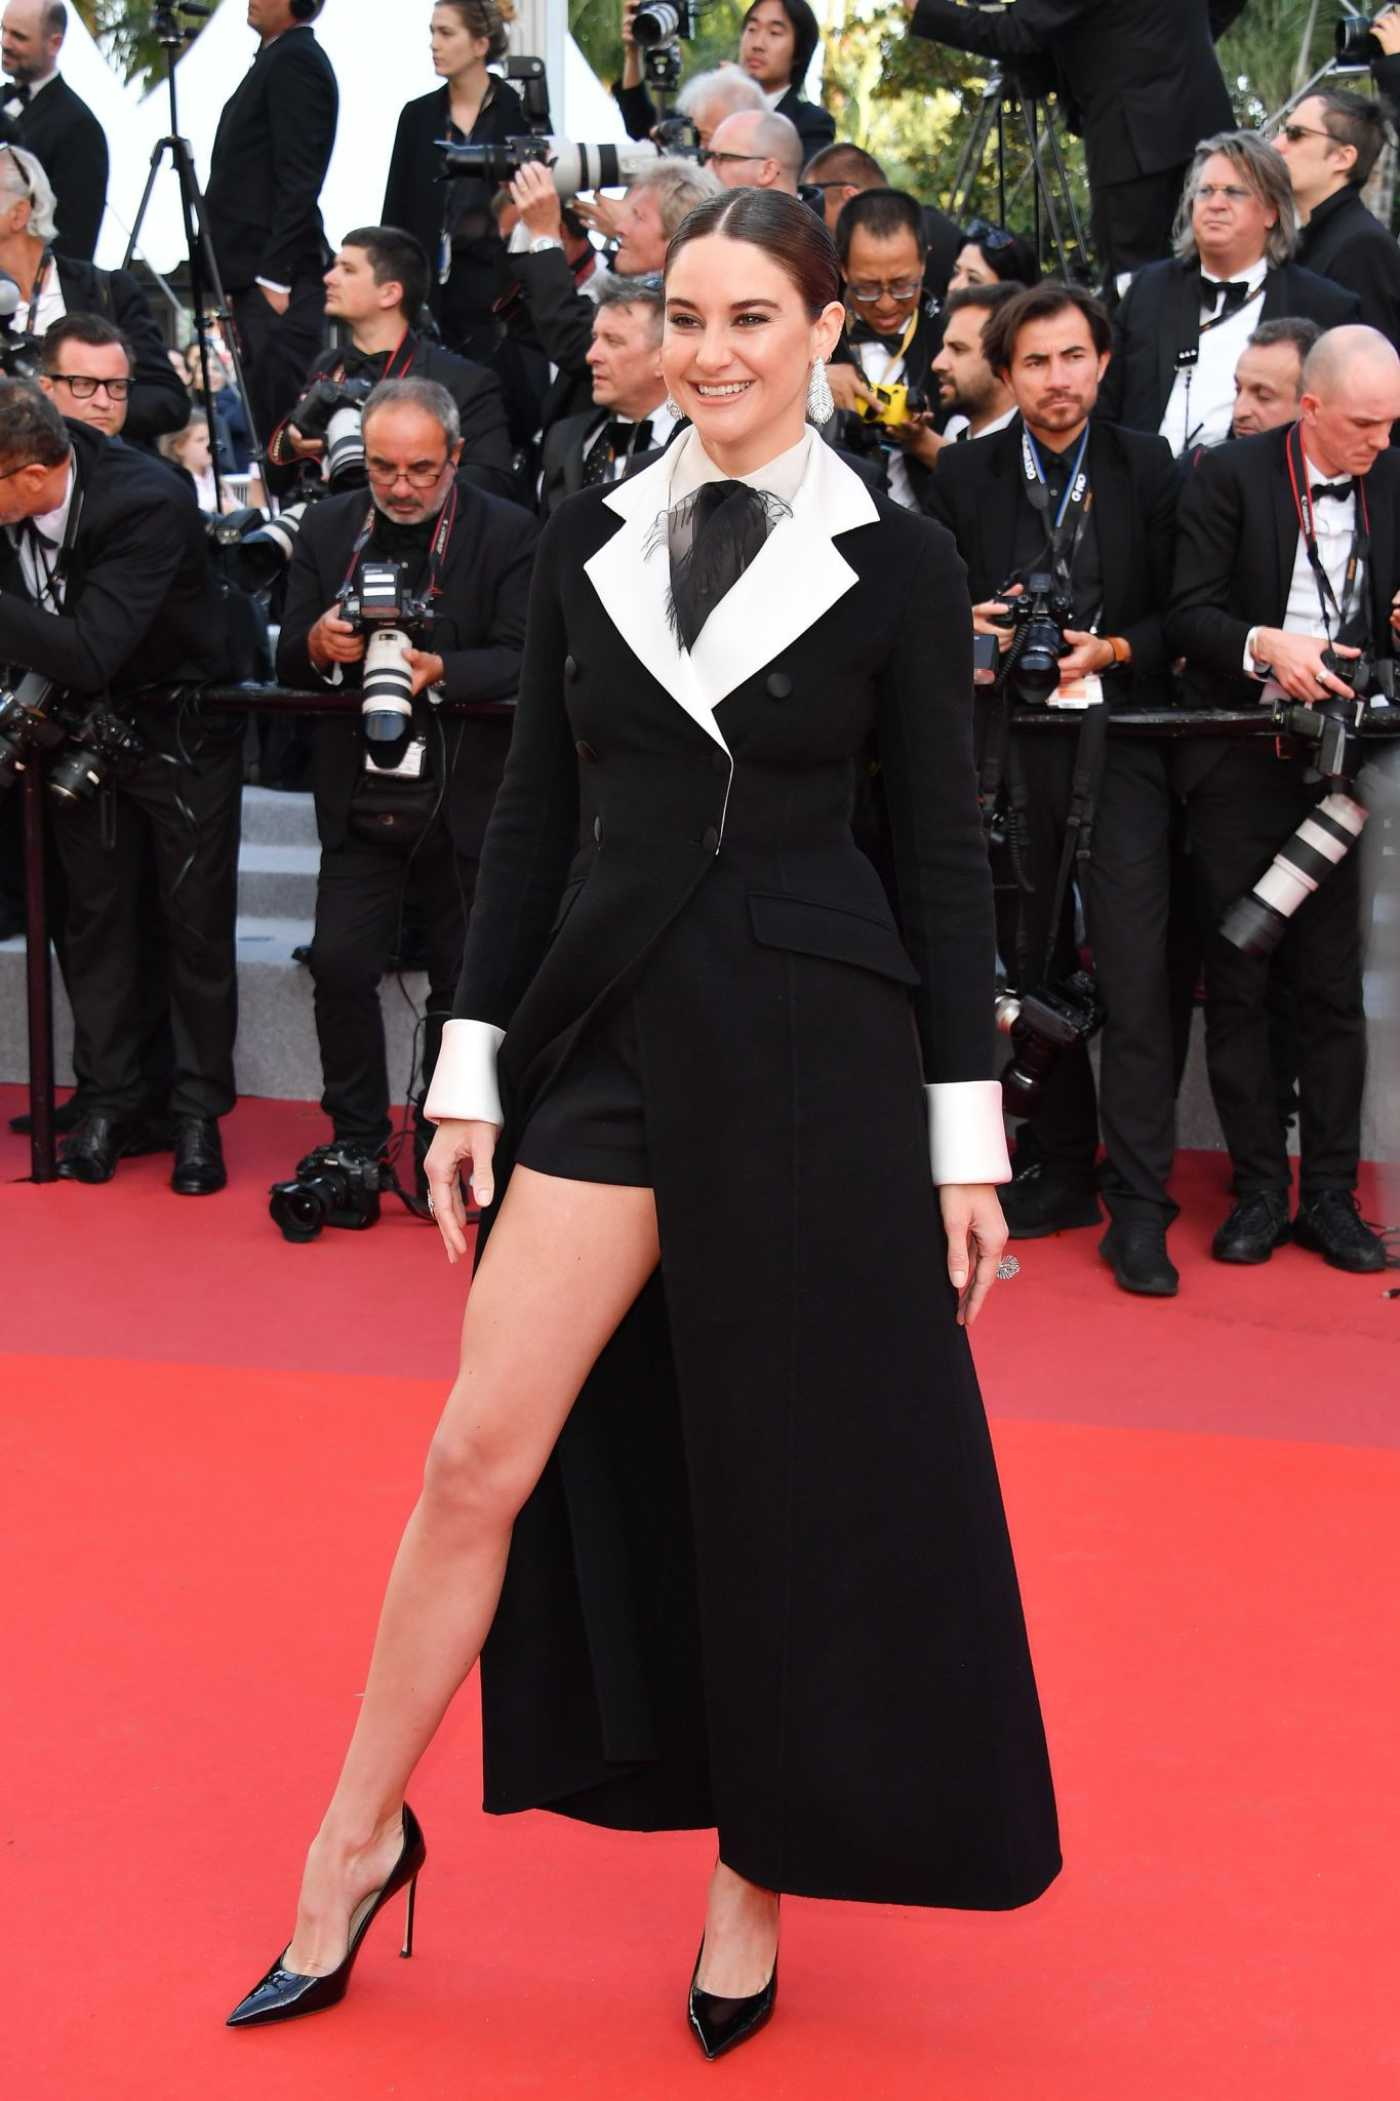 Shailene Woodley Attends the Rocketman Premiere During the 72nd Cannes Film Festival in Cannes 05/16/2019